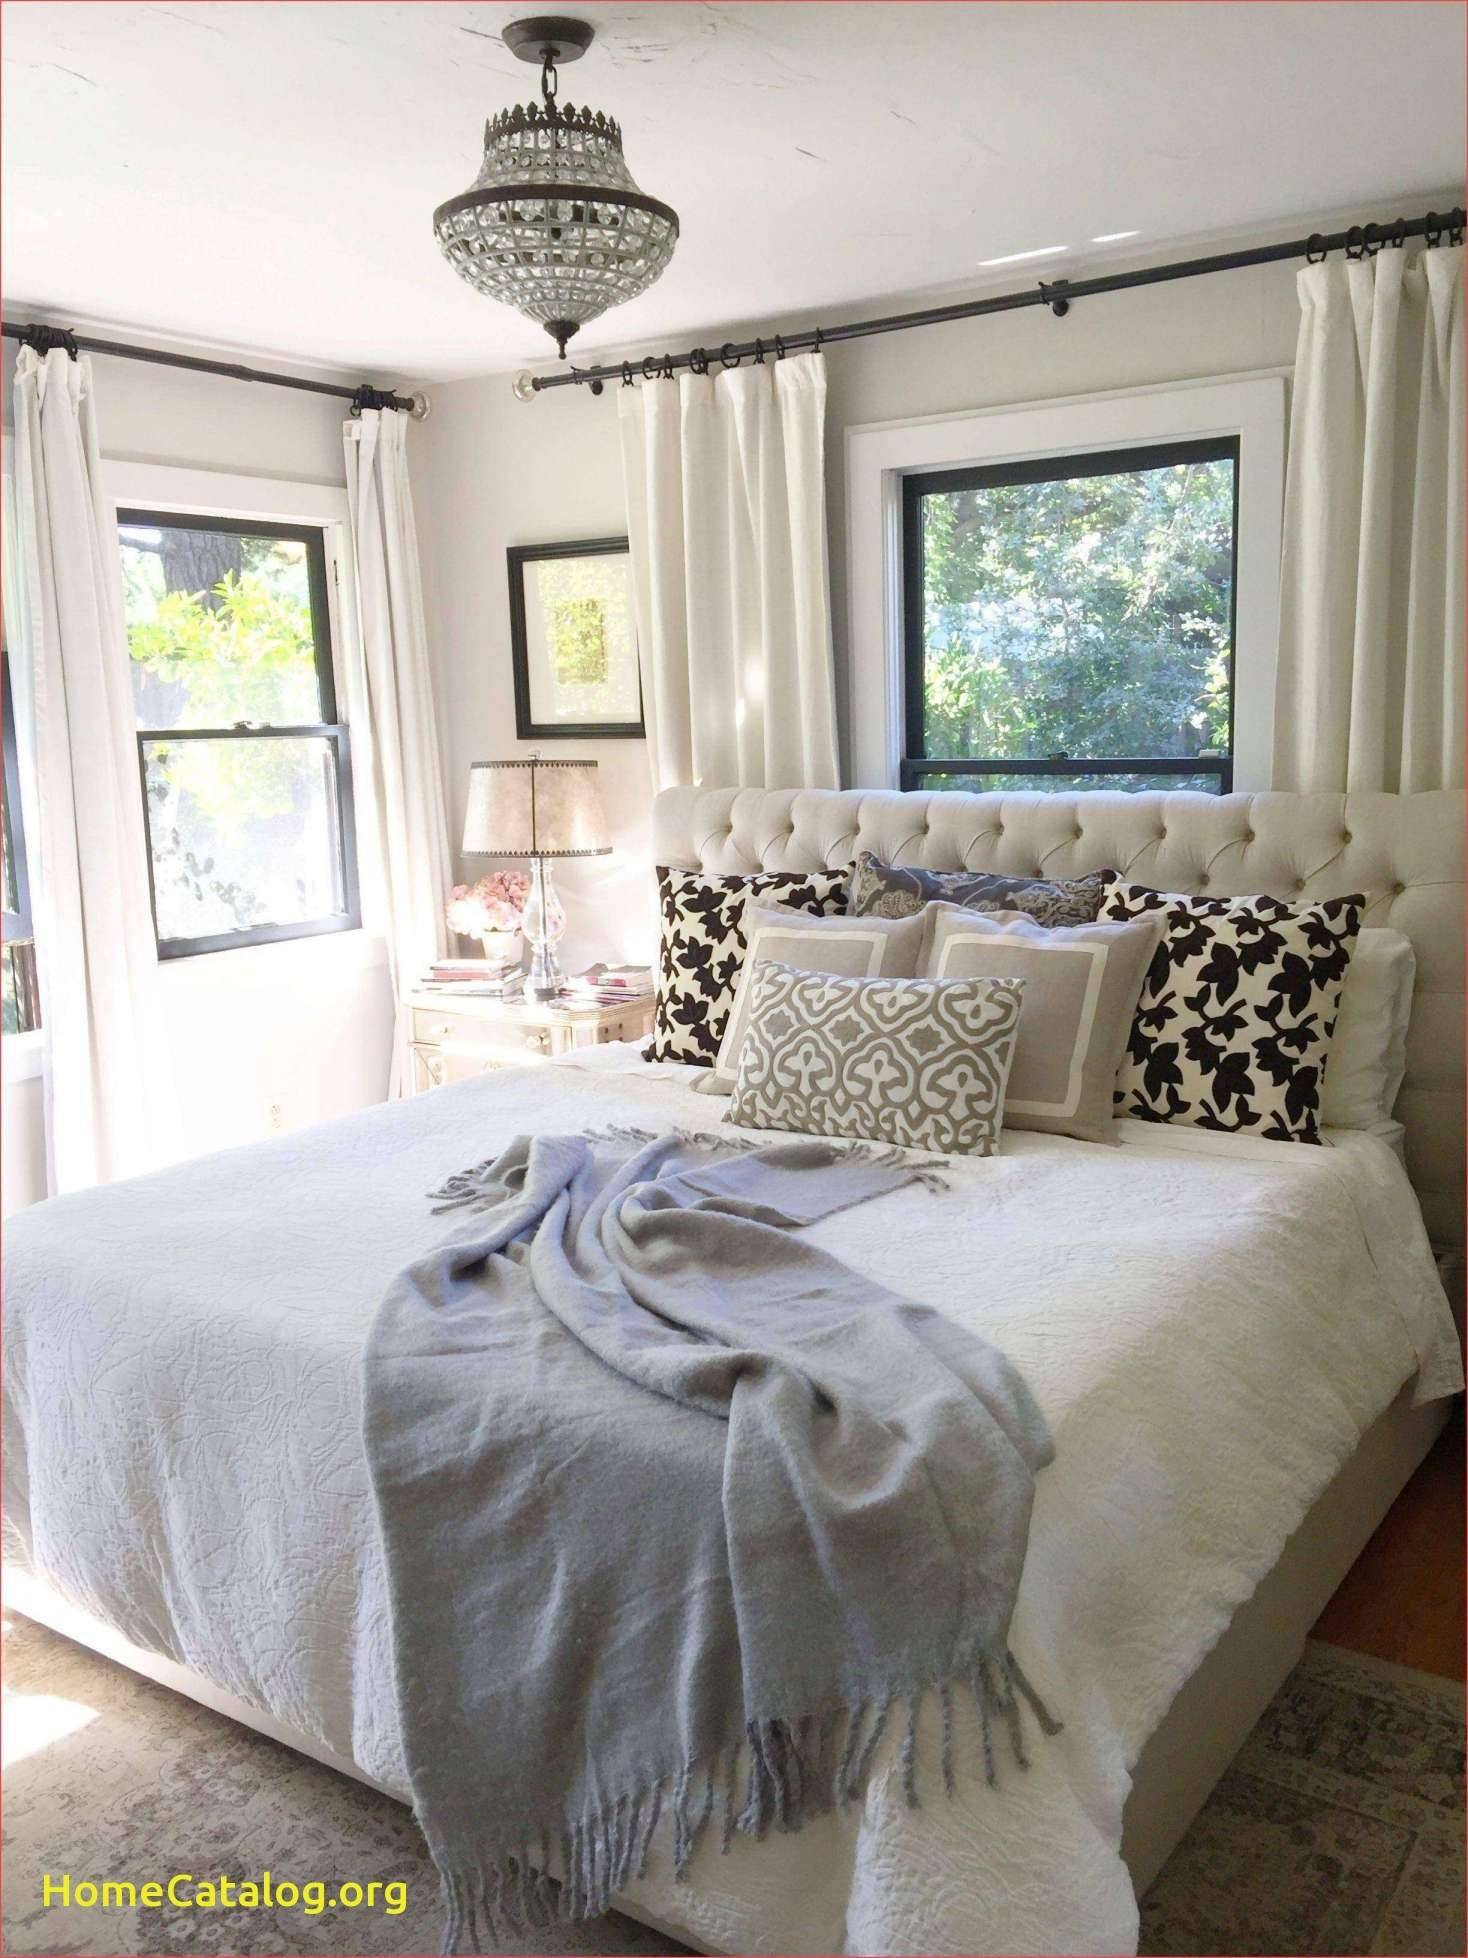 bedroom decor ideas 2019 awesome 5 inspirational master bedroom furniture in 2019 of bedroom decor ideas 2019